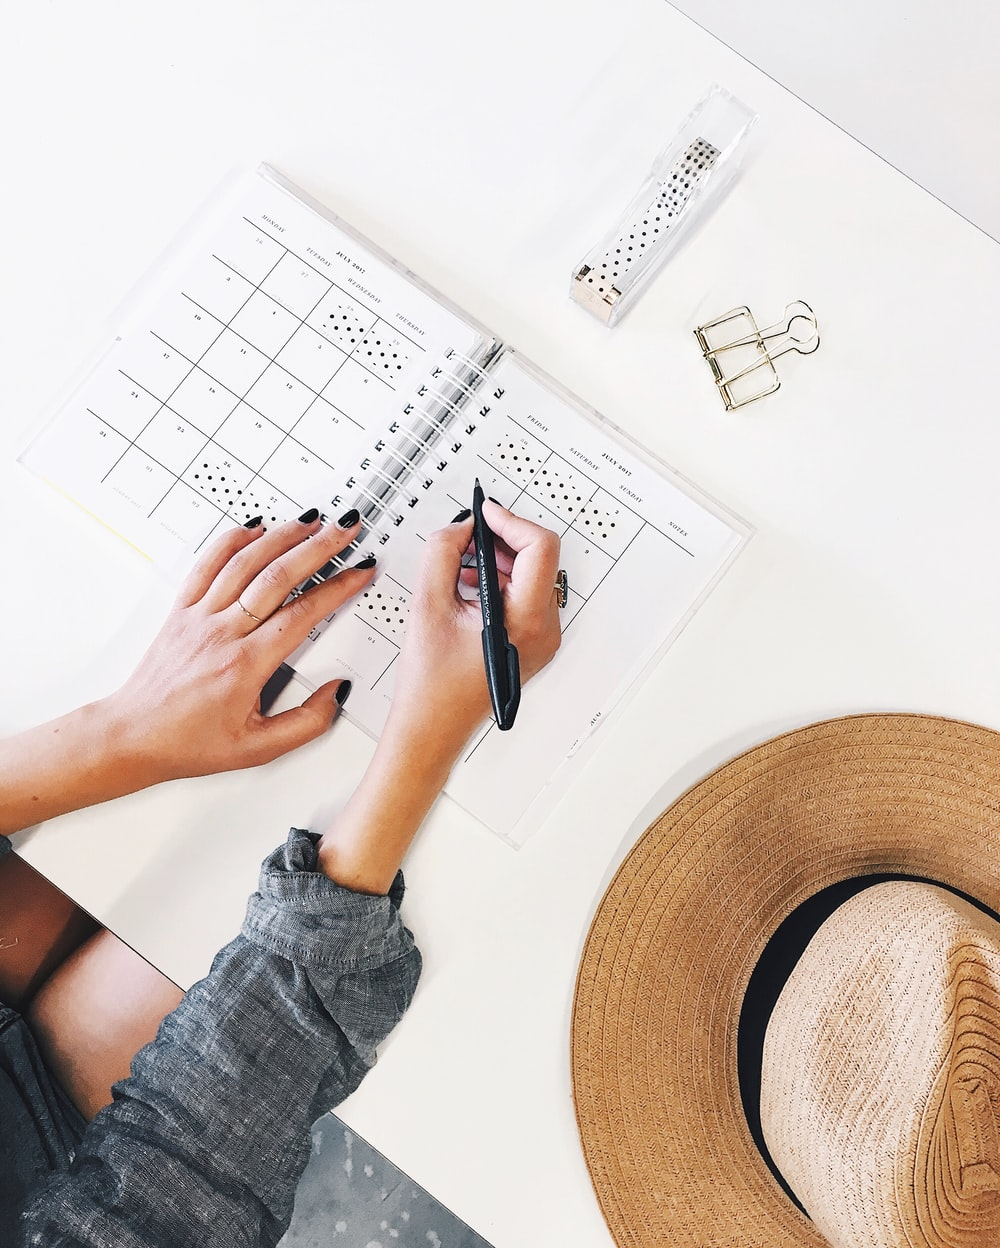 Photo Via: https://unsplash.com/photos/-837JygbCJo, An overhead shot of a person writing in a planner on a desk